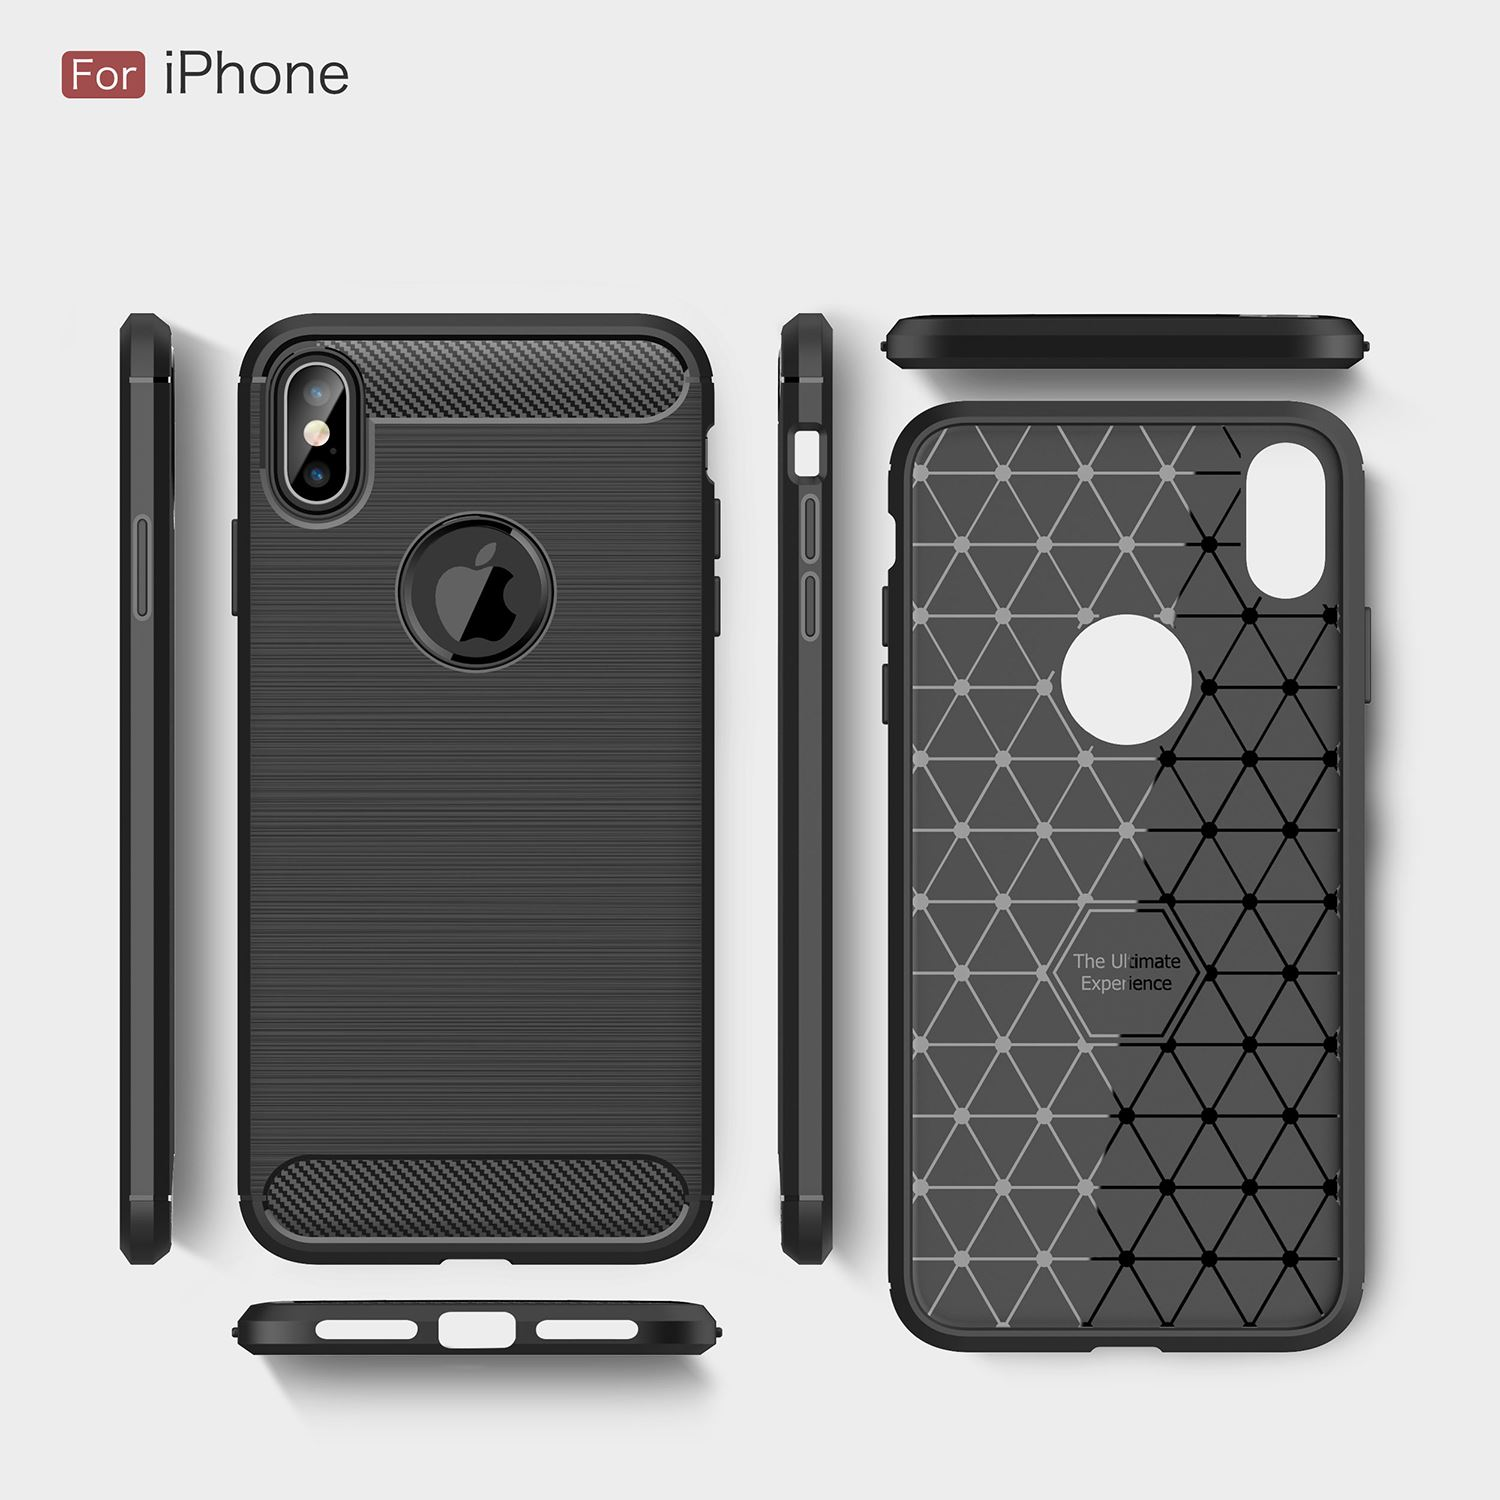 miniature 27 - For Apple iPhone XR Xs Max X 8 7 Plus 6 5 Se 2020 Case Cover New Phone Proof